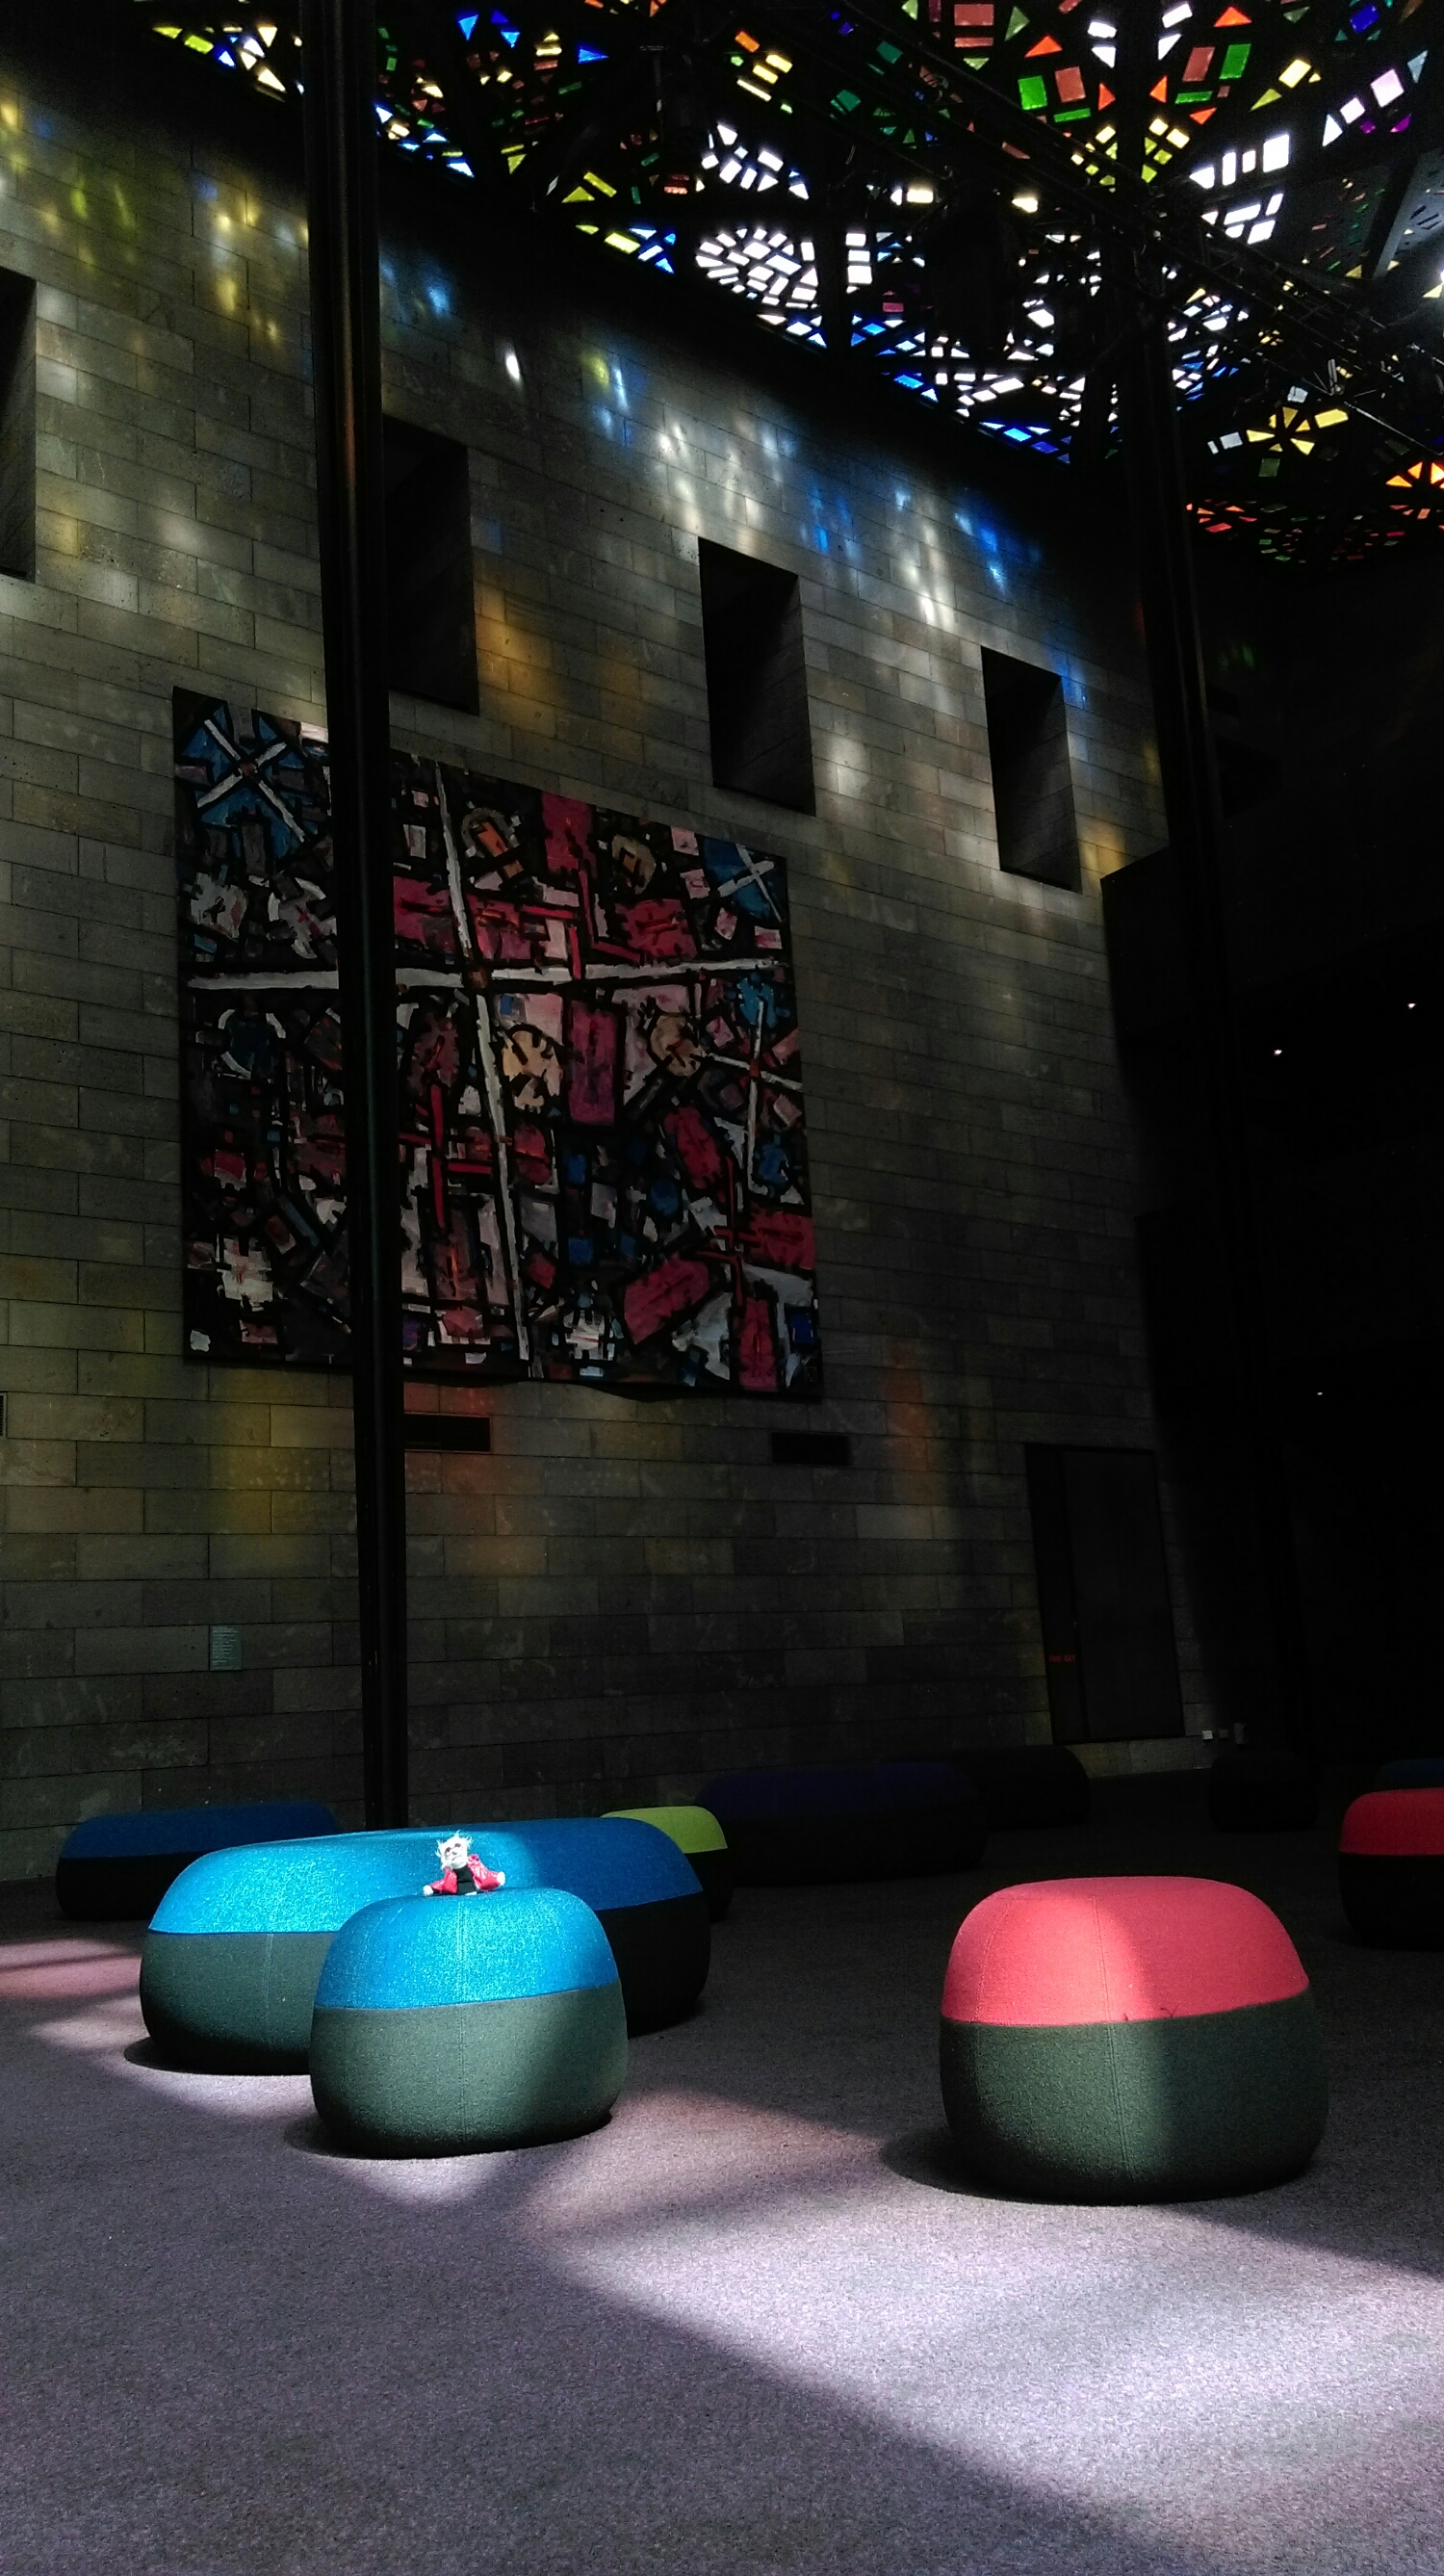 Into the Great Hall now, these cushions are built for play or just lying on to admire the spectacular roof!